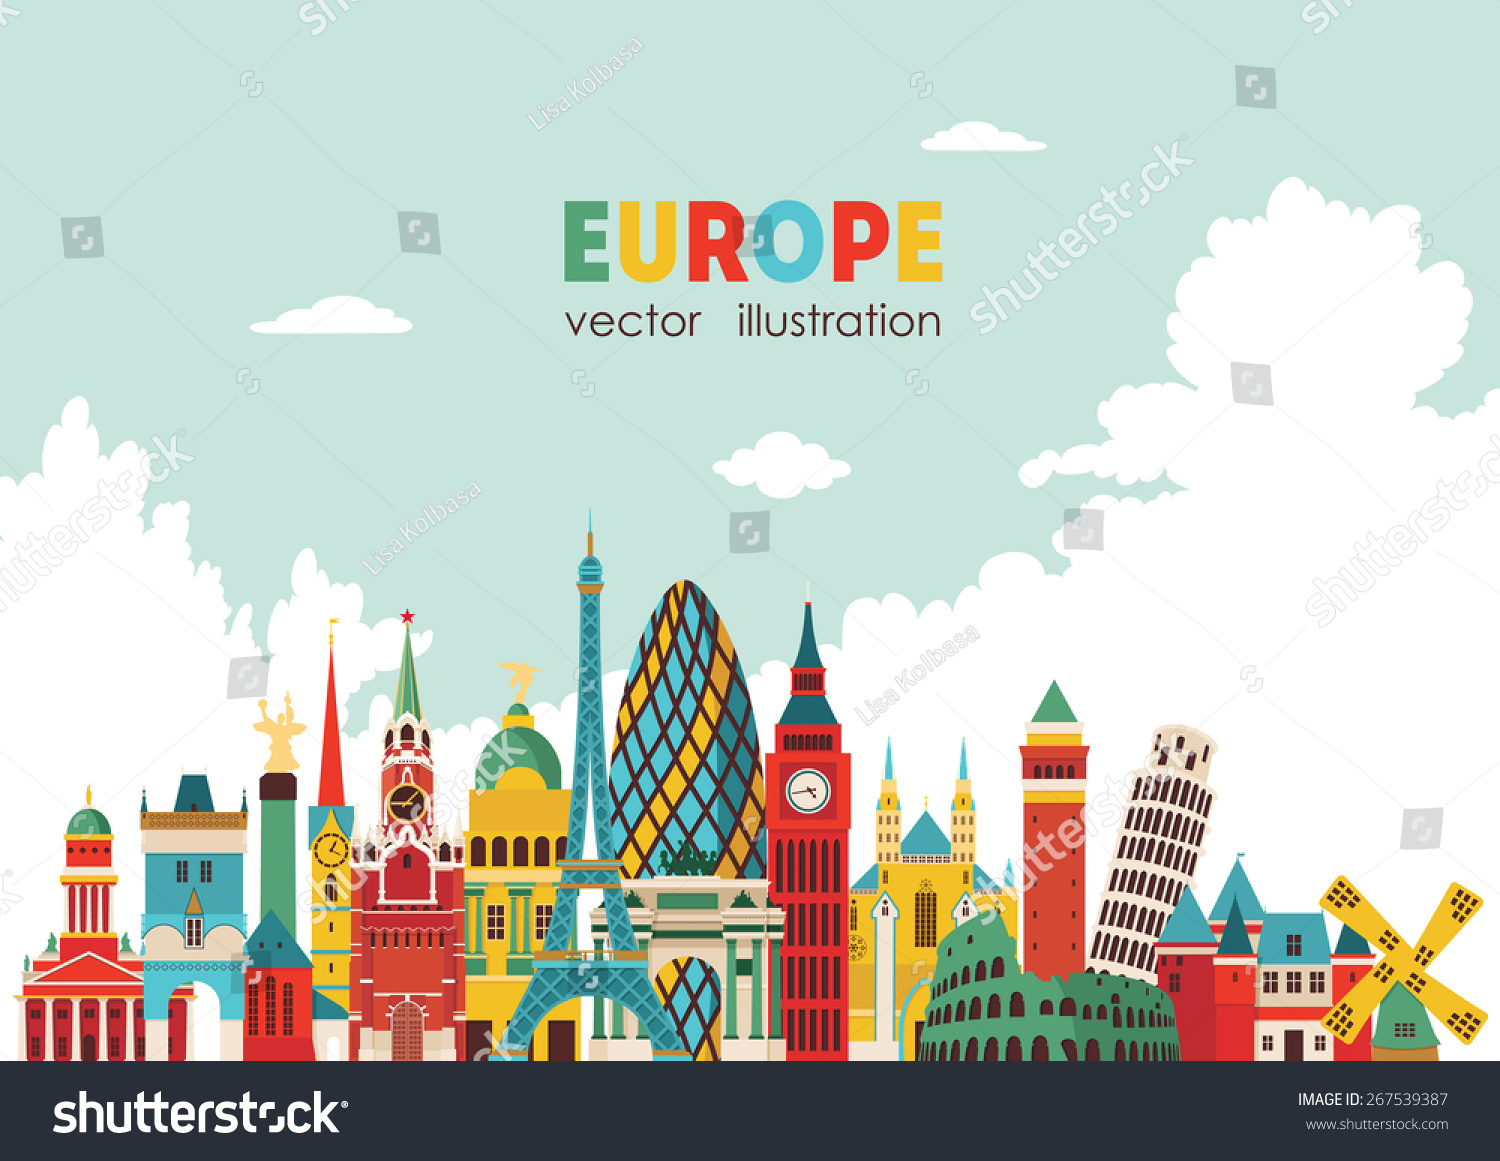 vector illustration of europe - photo #18